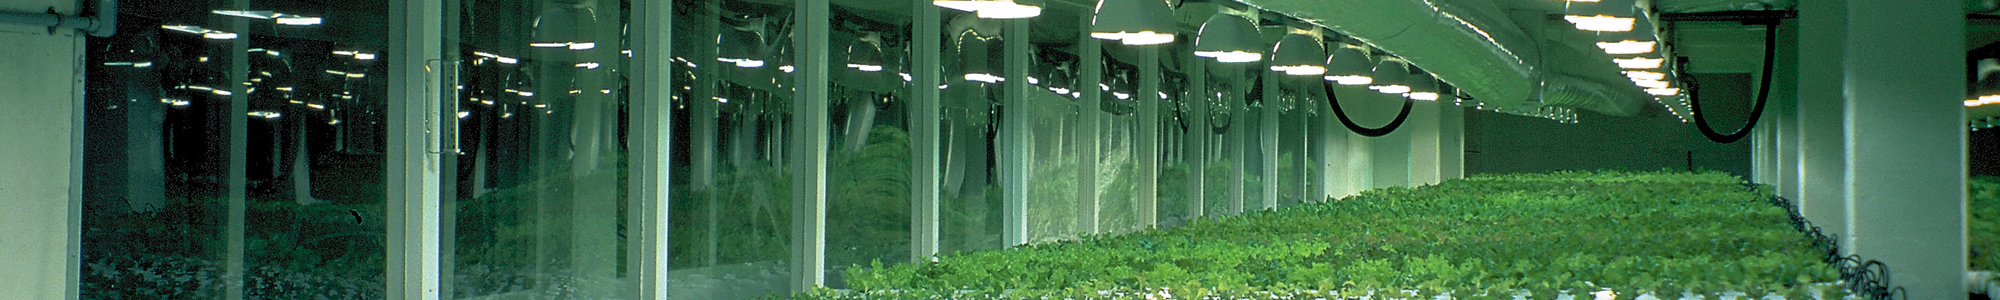 Sunmaster Grow Lamps in action